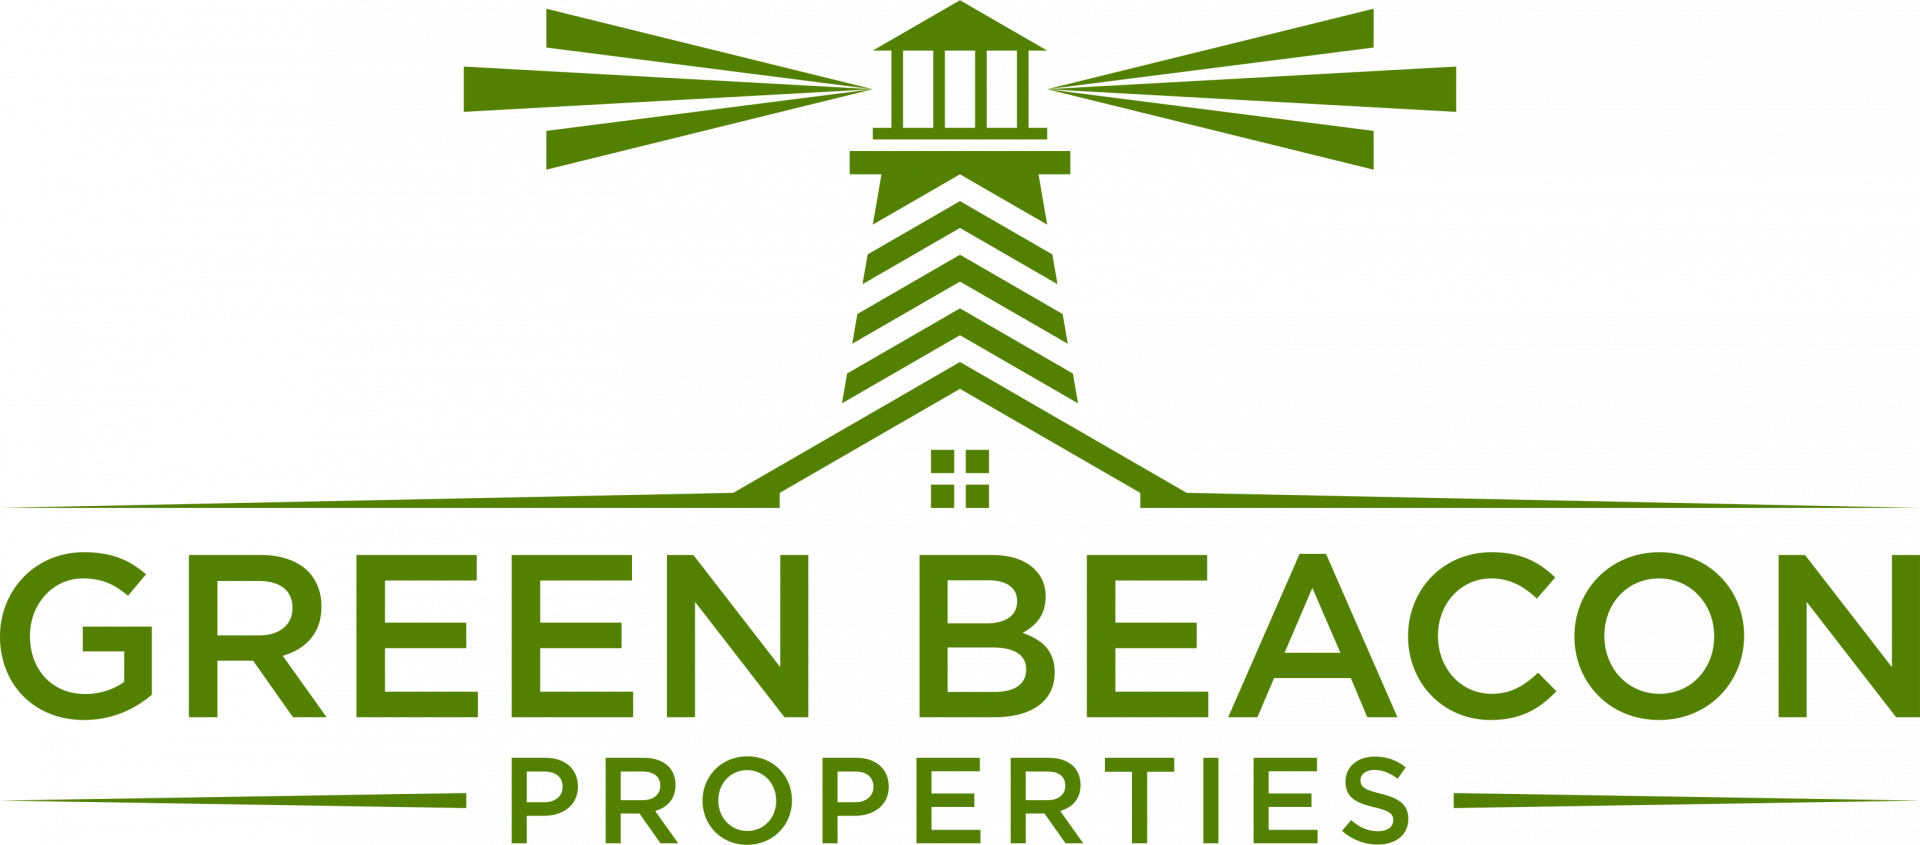 Green Beacon Properties  logo